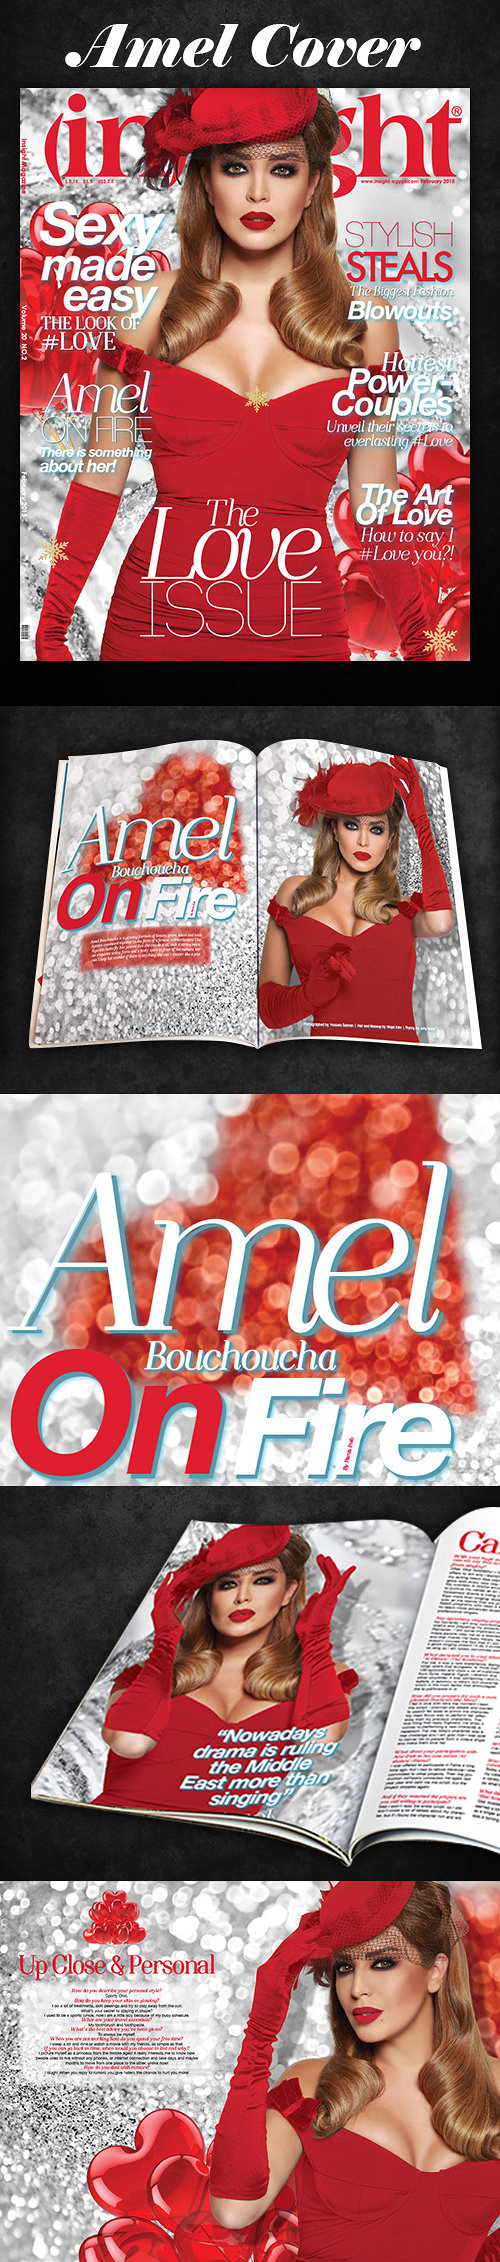 Amel Bouchoucha Cover Story